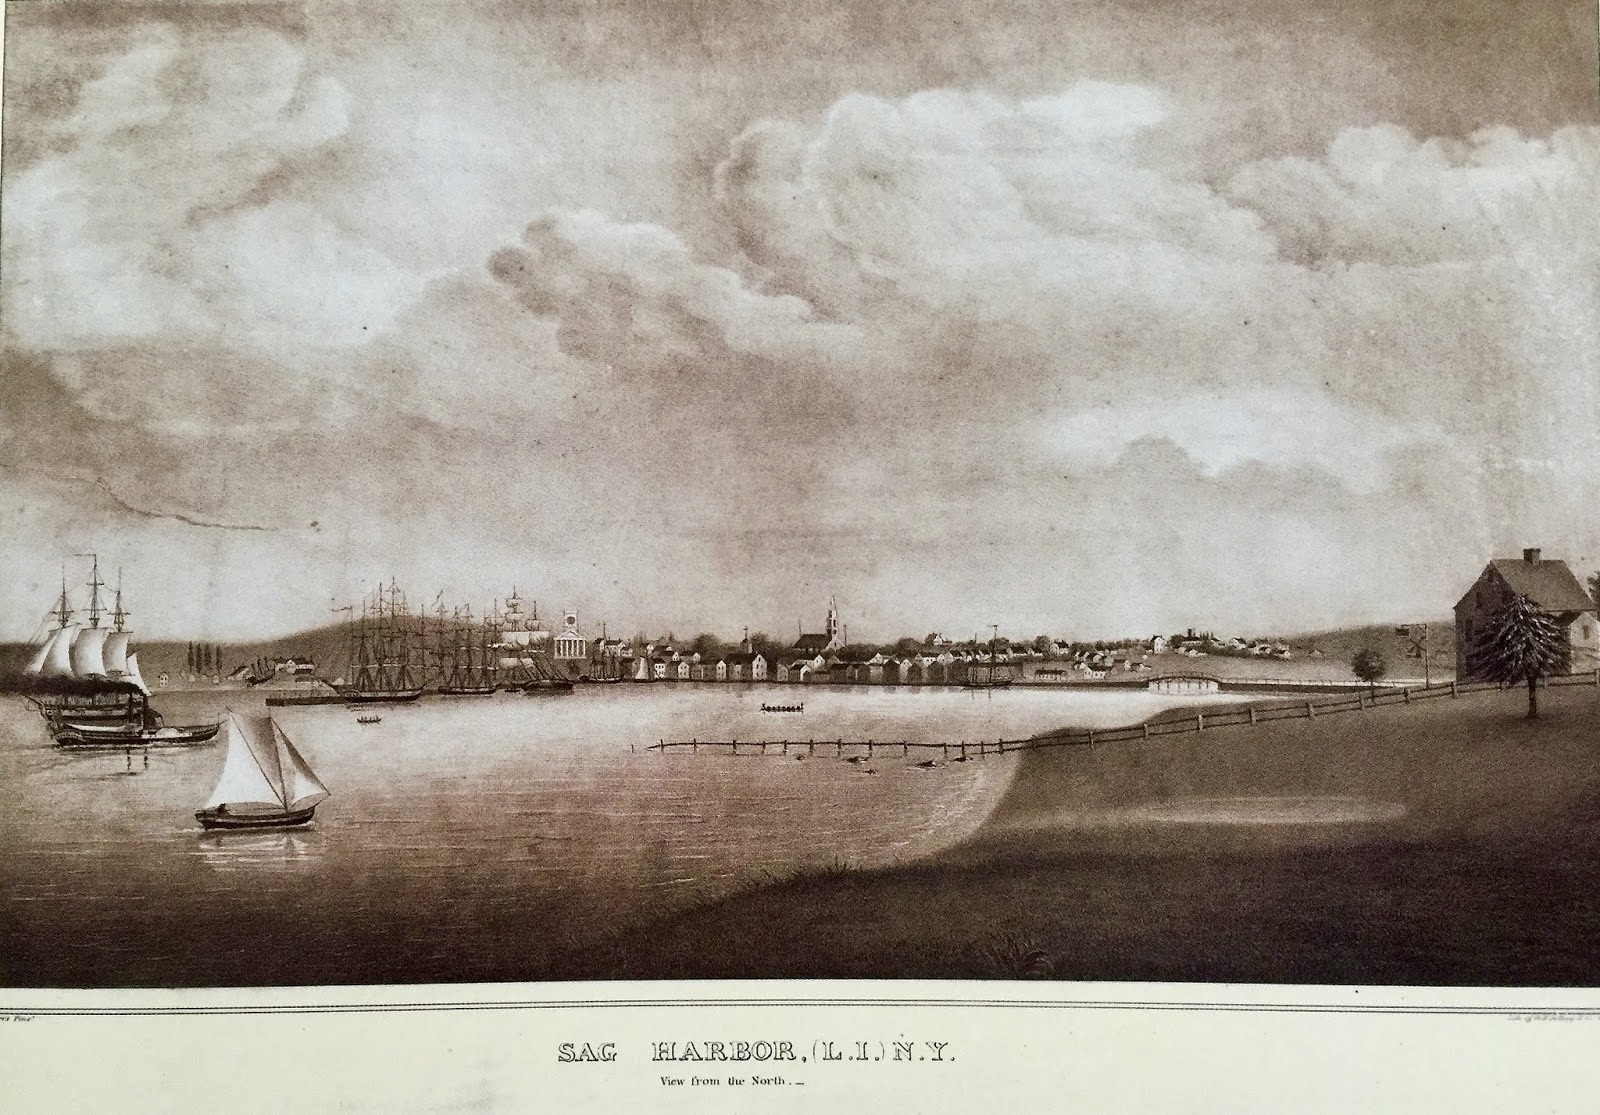 An 18th century view of Sag Harbor painted by local artist Orlando Hand Bears in 1840.